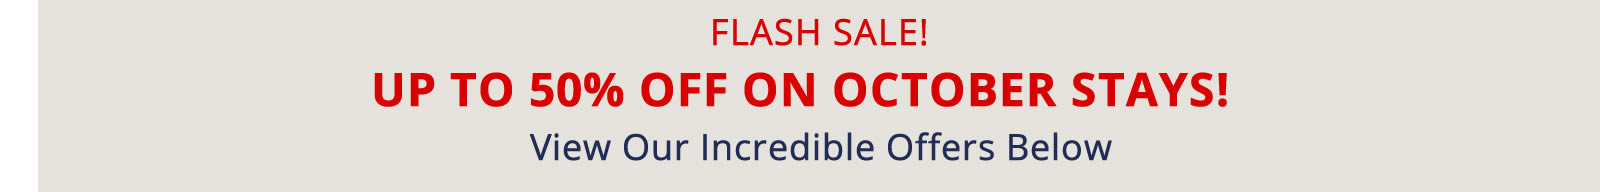 FLASH SALE! UP TO 50% OFF OCTOBER STAYS!